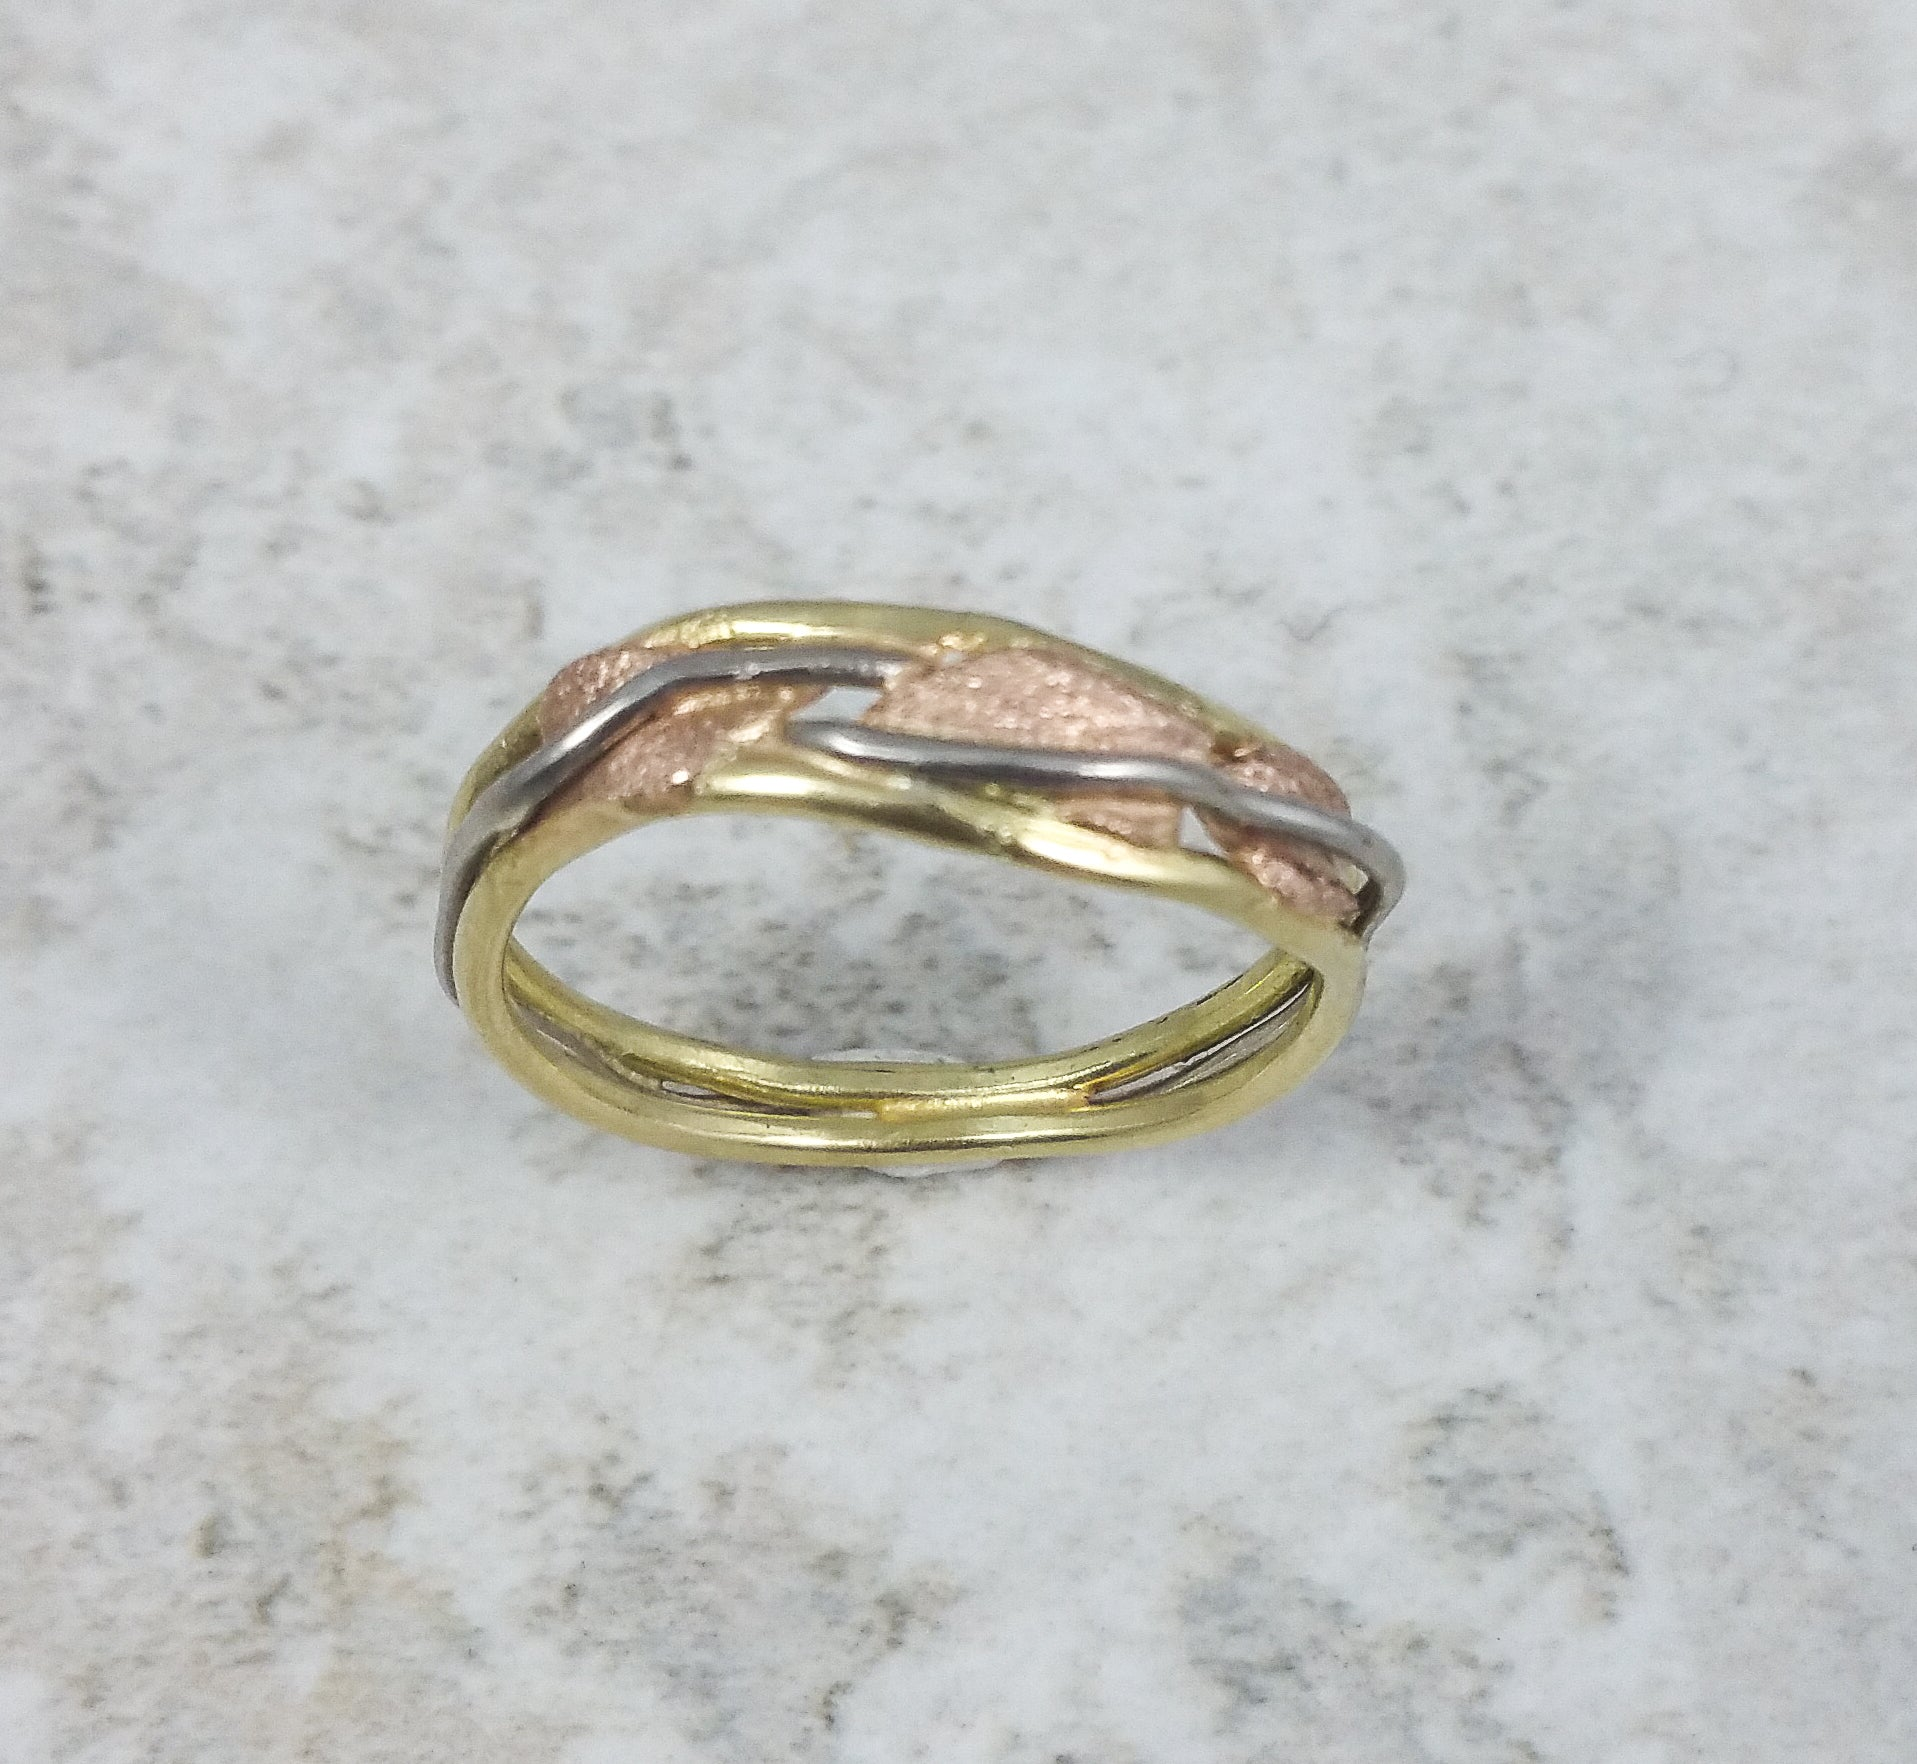 Leaf and Vine Curved Band in yellow, rose and white gold